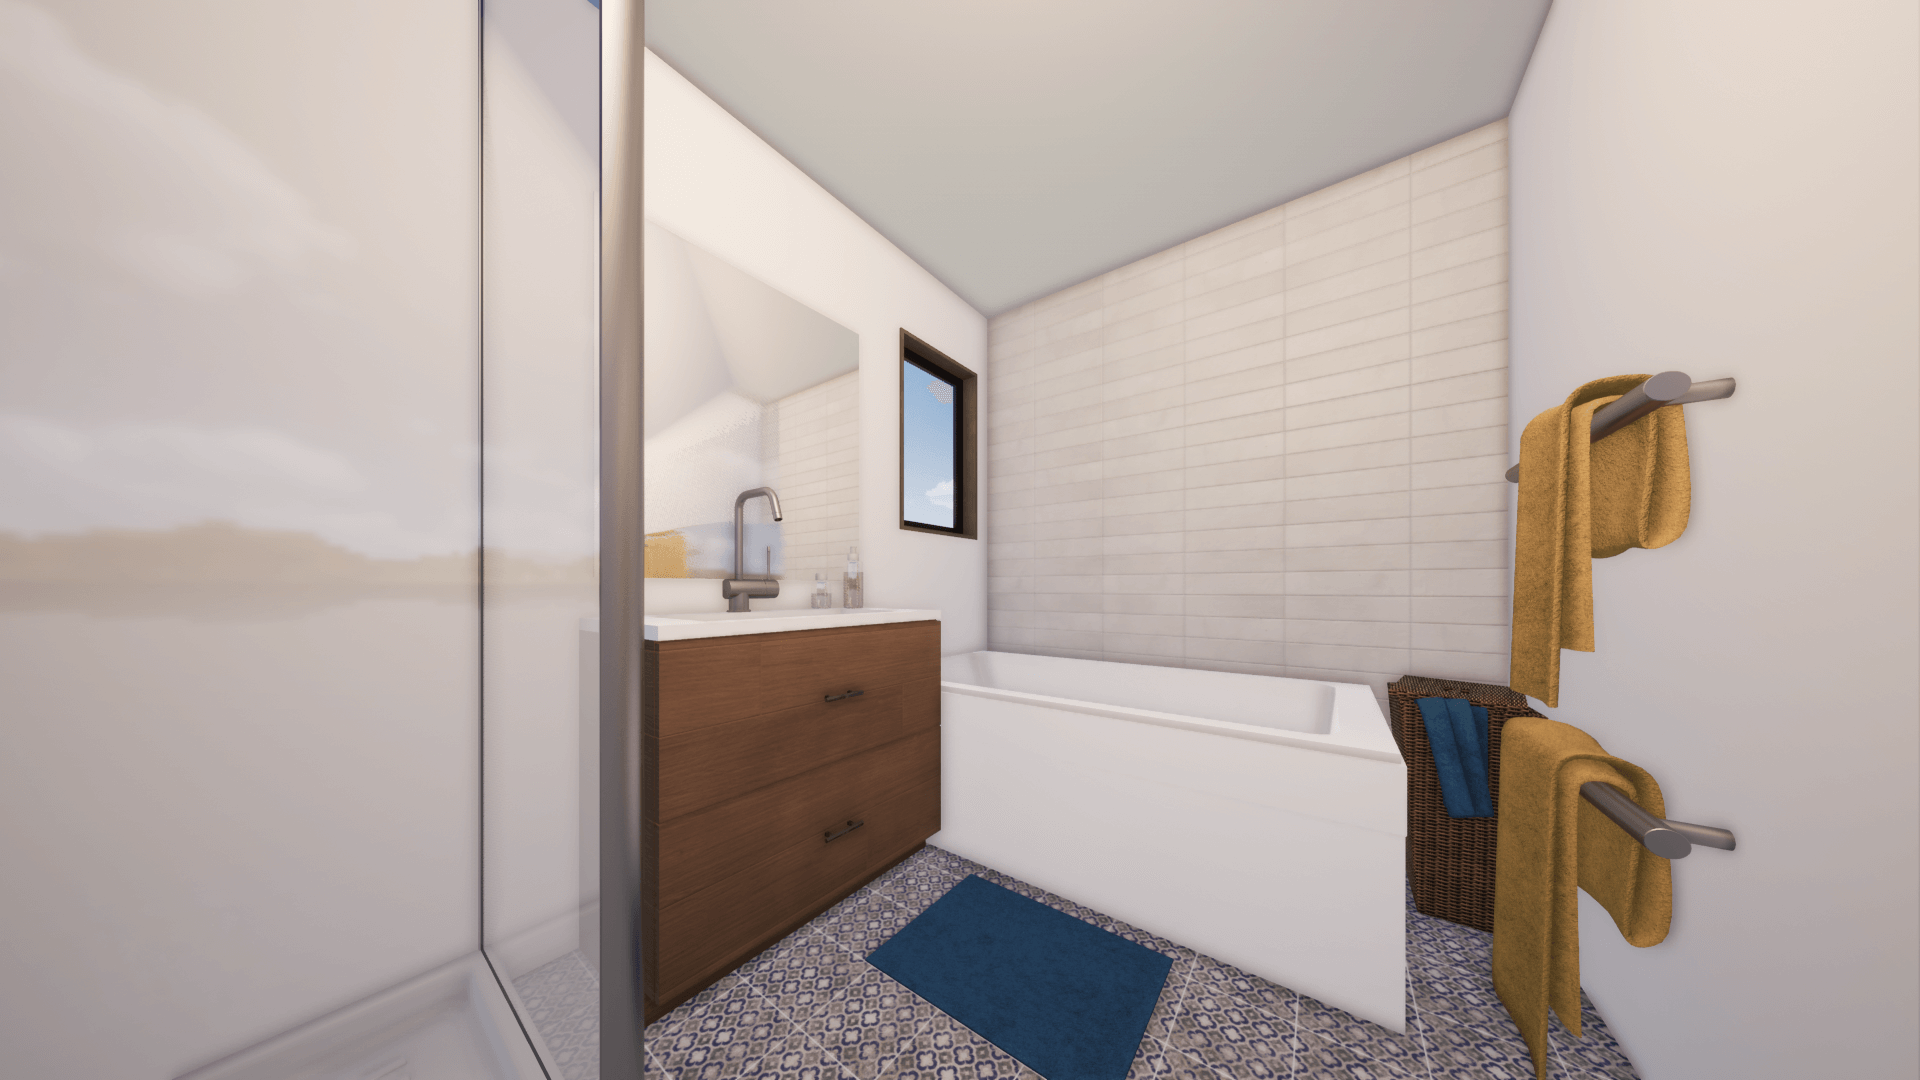 Prefab Home bathroom render